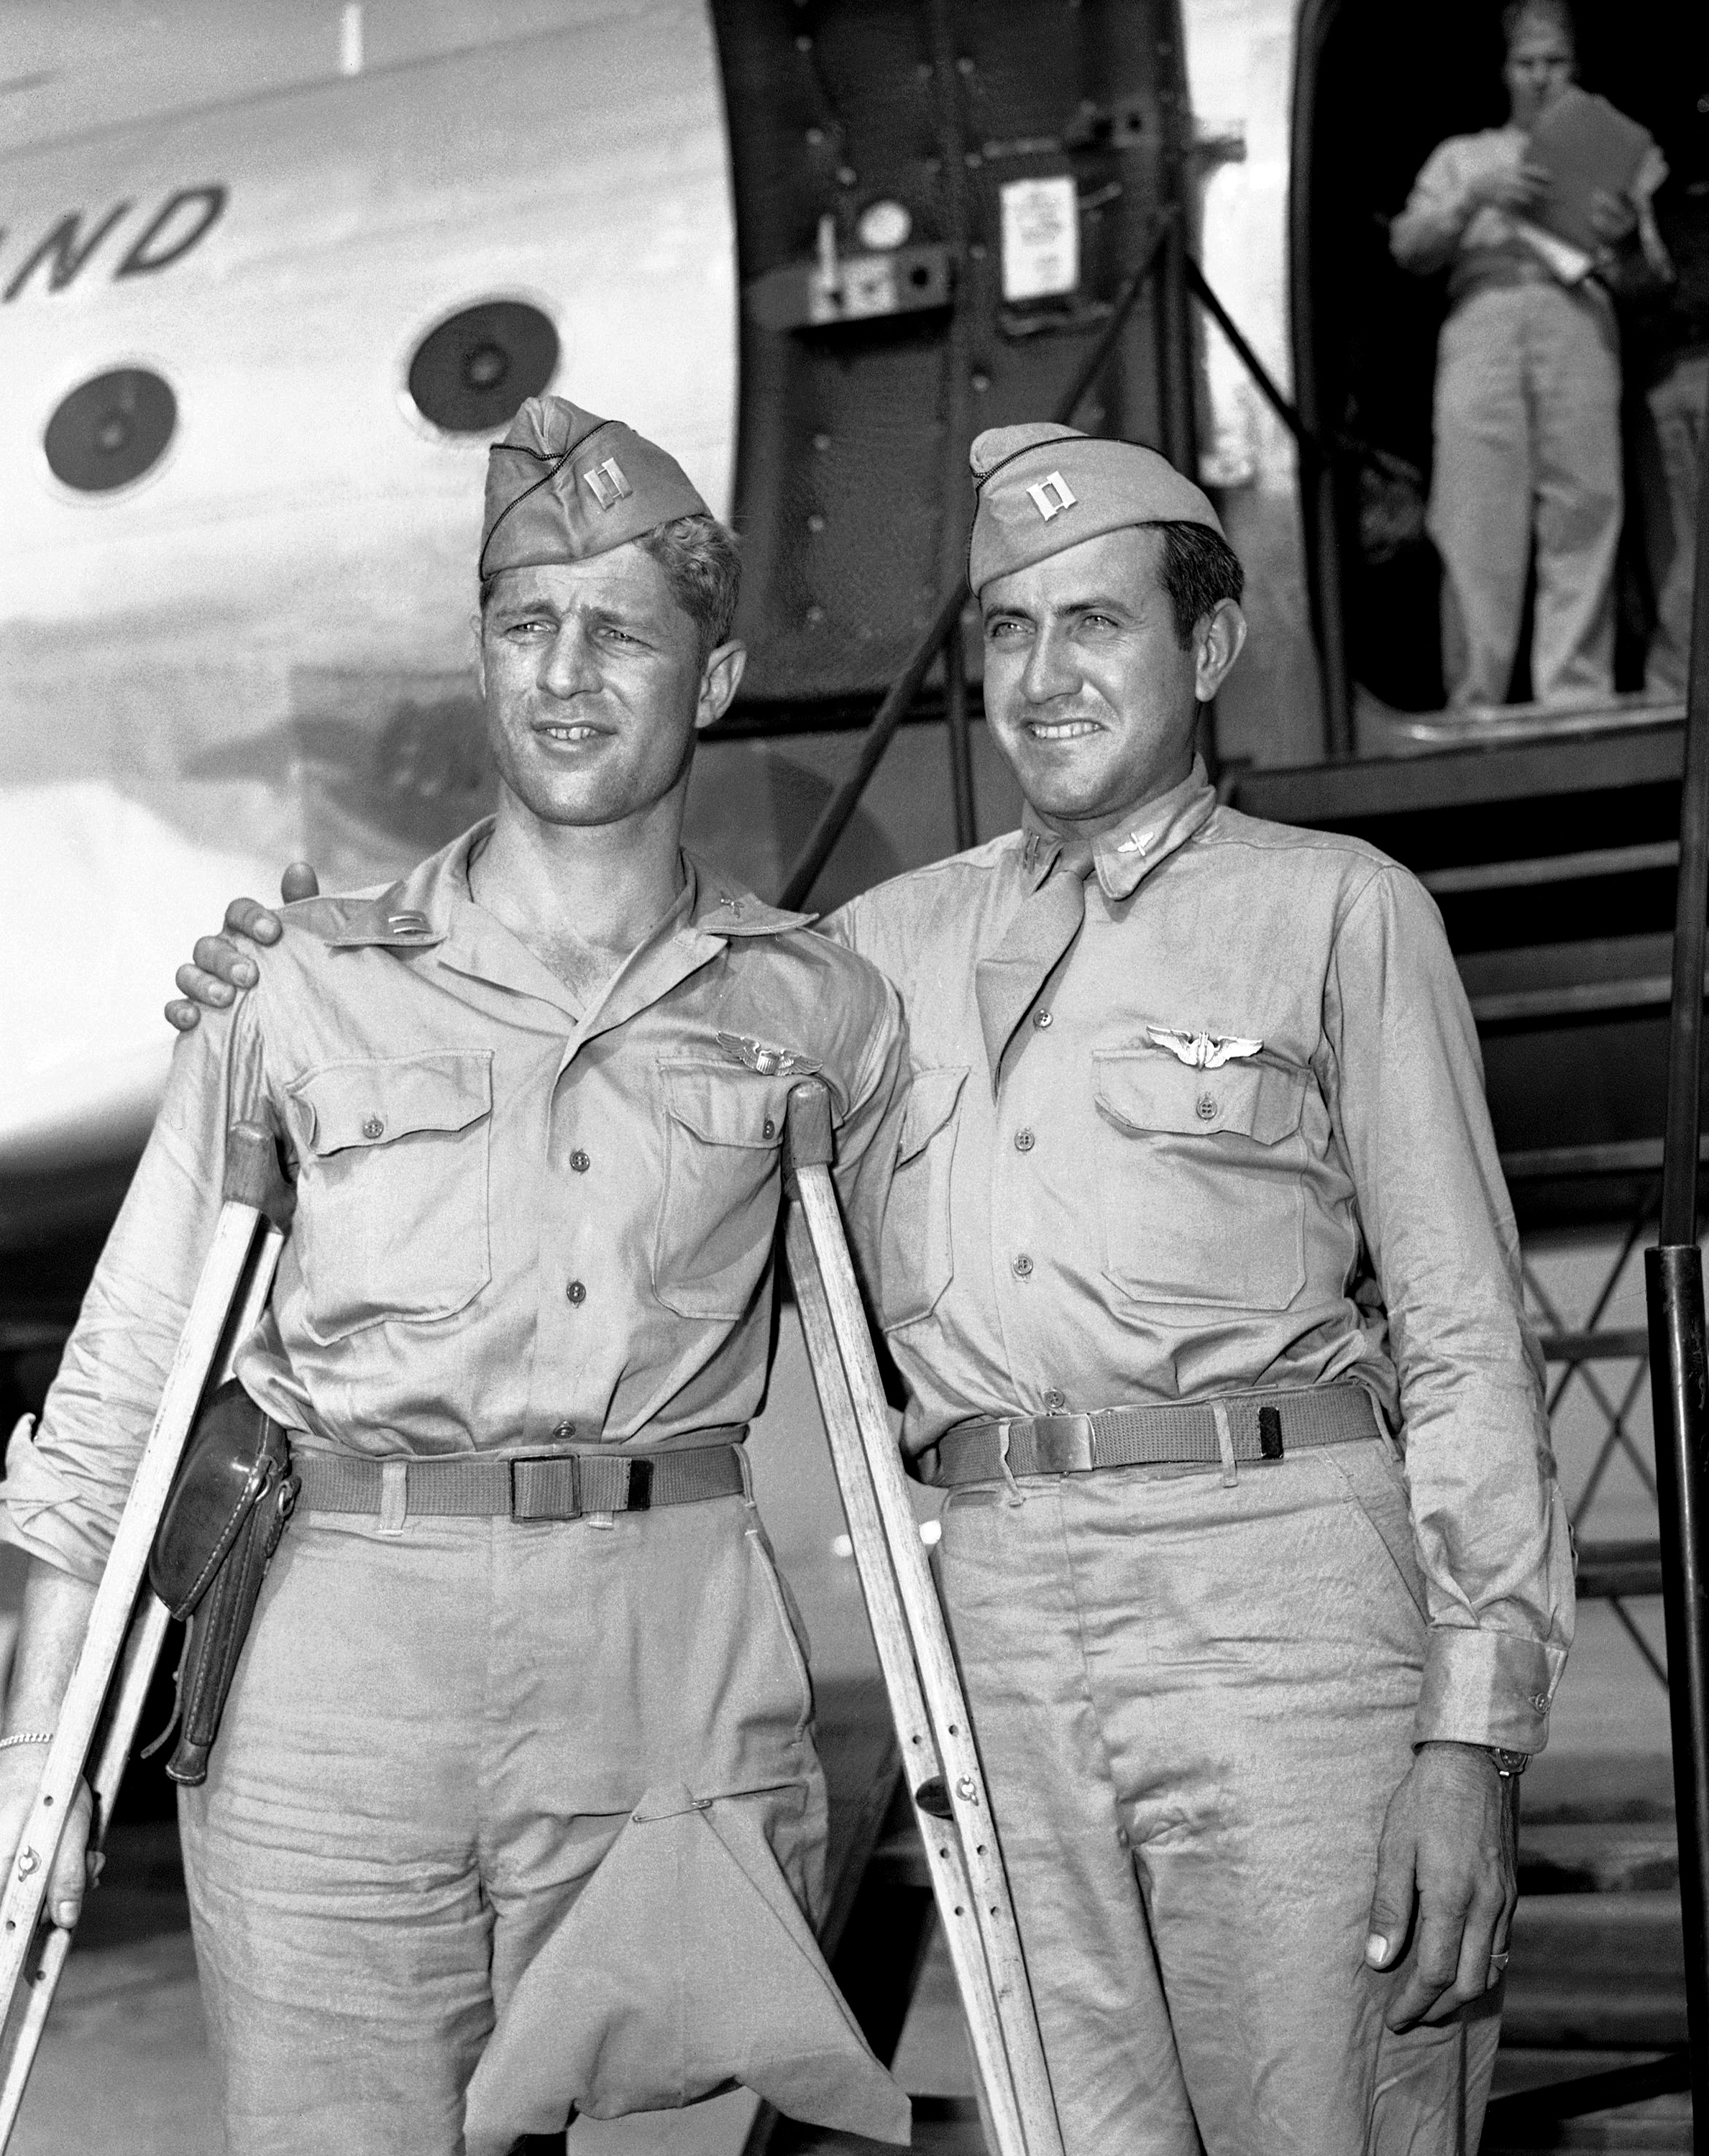 In a Oct. 3, 1945 file photo, Capt. Louis Zamperini (right), Torrence, Calif., former track star, who was adrift 47 days in Pacific after bombing mission against the Japanese and presumed dead, stands with his Pal, Capt. Fred Garrett, Riverside, Calif., upon  their arrival at Hamilton Field, Calif. Both were prisoners of war. Zamperini, a U.S. Olympic distance runner and World War II veteran who survived 47 days on a raft in the Pacific after his bomber crashed, then endured two years in Japanese prison camps, died Wednesday, July 2, 2014, according to Universal Pictures studio spokesman Michael Moses. He was 97. (AP Photo/PCS, File)